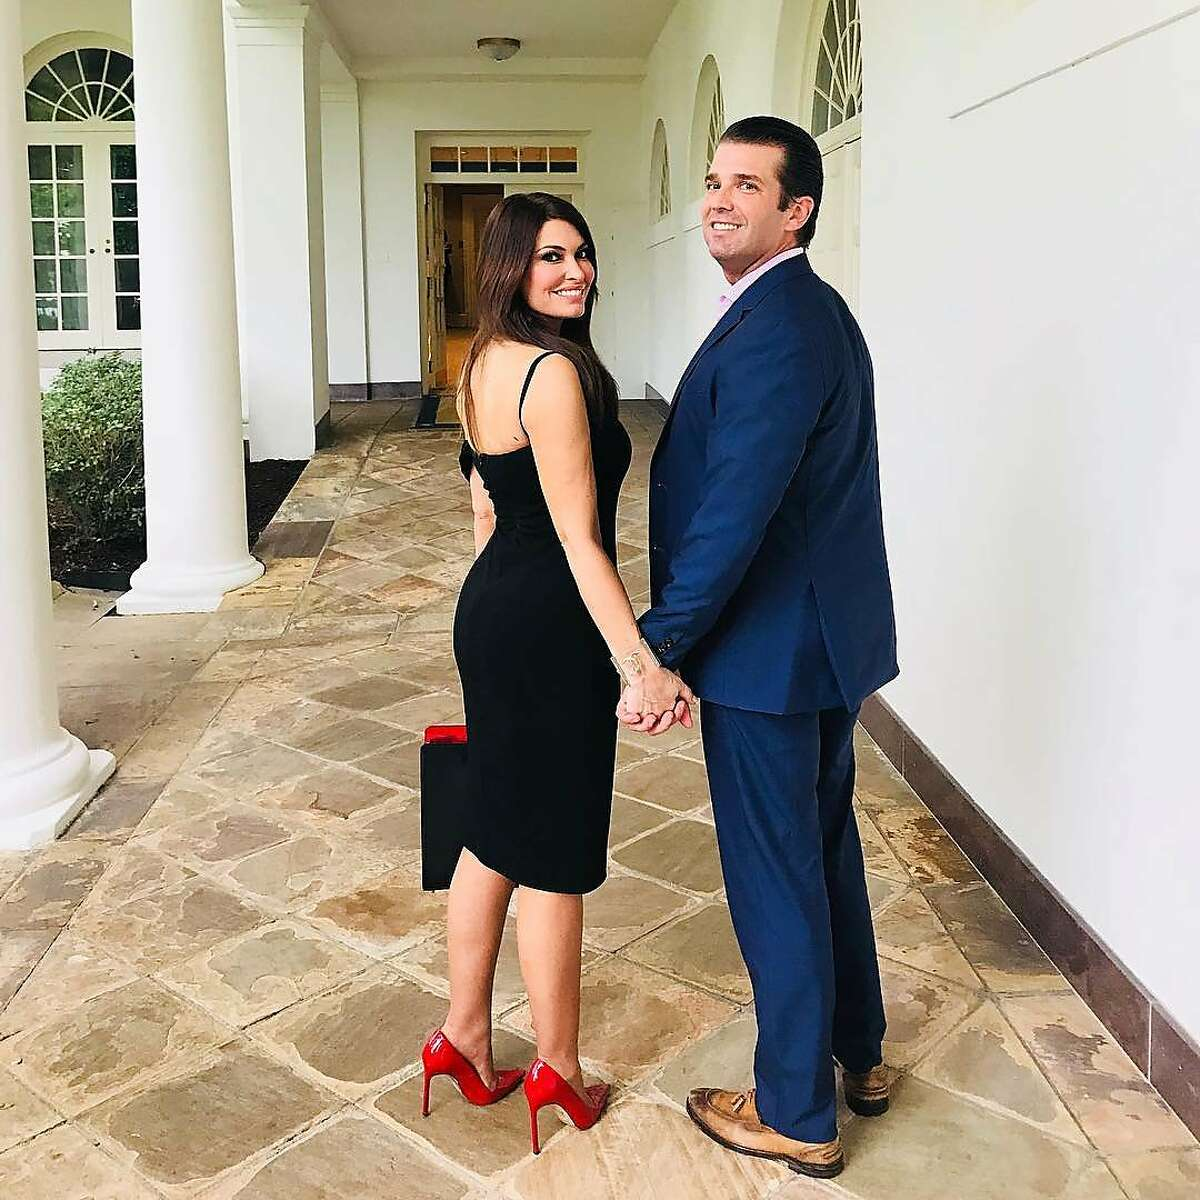 Fox News TV personality Kimberly Guilfoyle joins new boyfriend Donald Trump Jr. at 4th of July festivities at the White House.